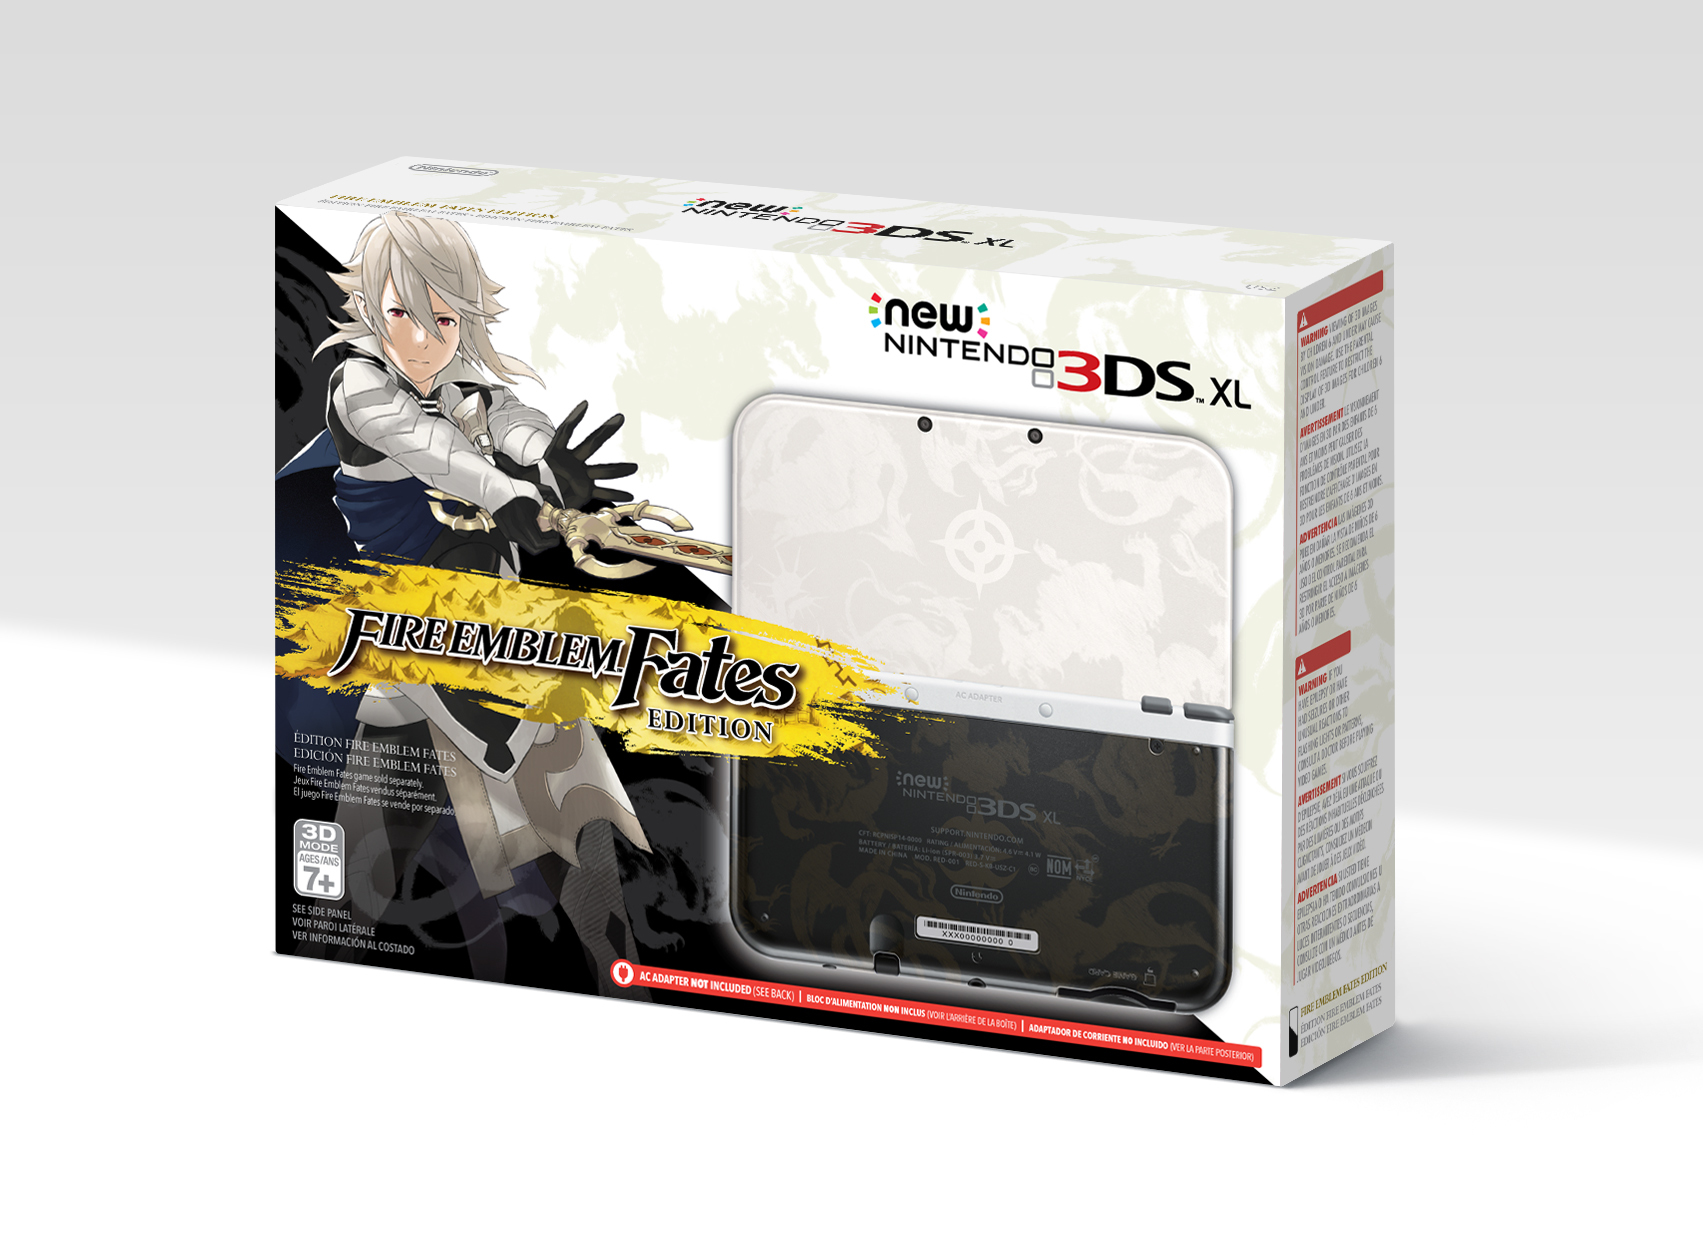 fire emblem fates edition new 3ds xl announced for north. Black Bedroom Furniture Sets. Home Design Ideas